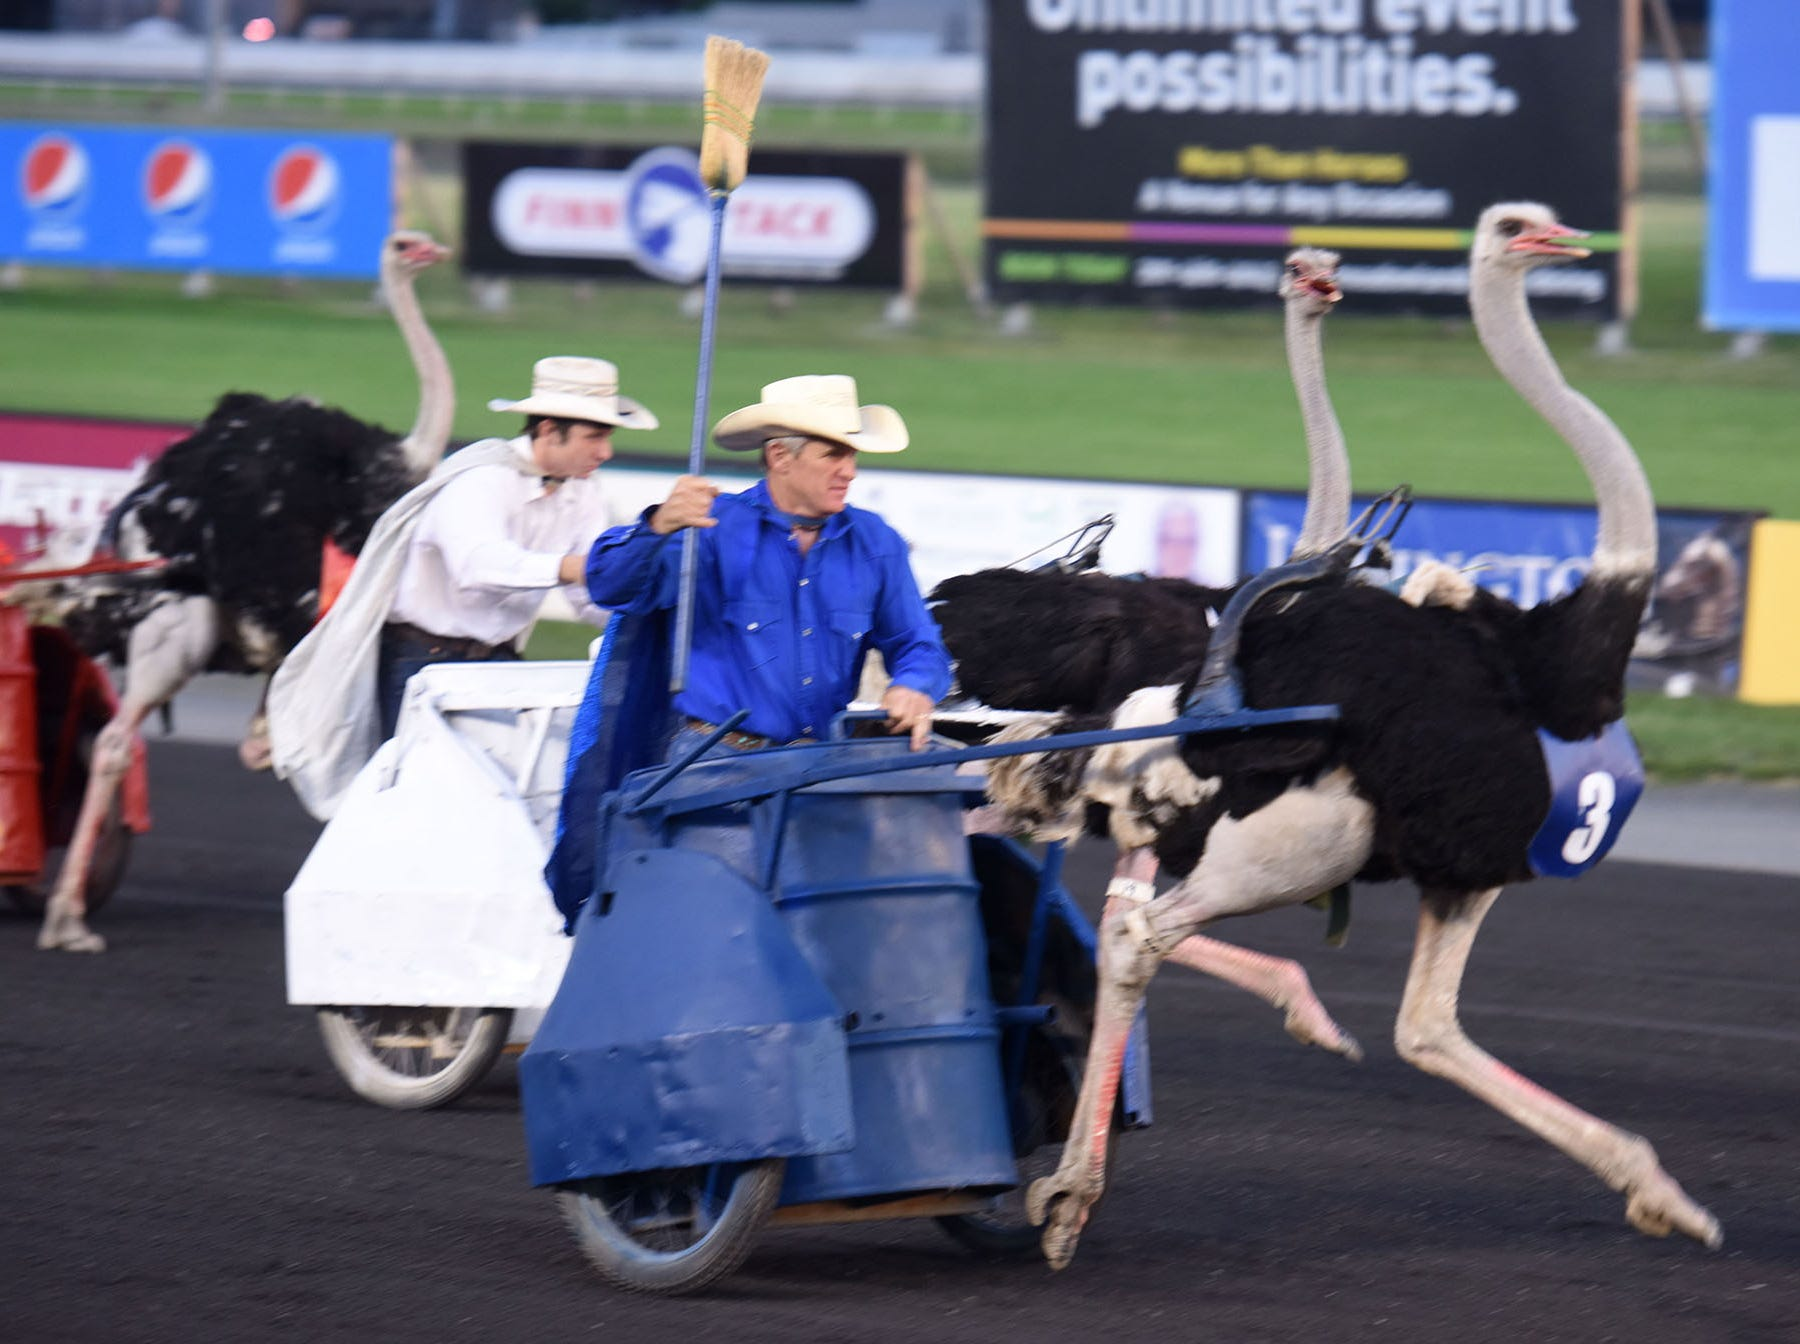 20032785A.6.16.2018.Esat Rutherford.Ostrich Derby:7th Annual Ostrich Derby at Meadowlands Racing & Entertainment